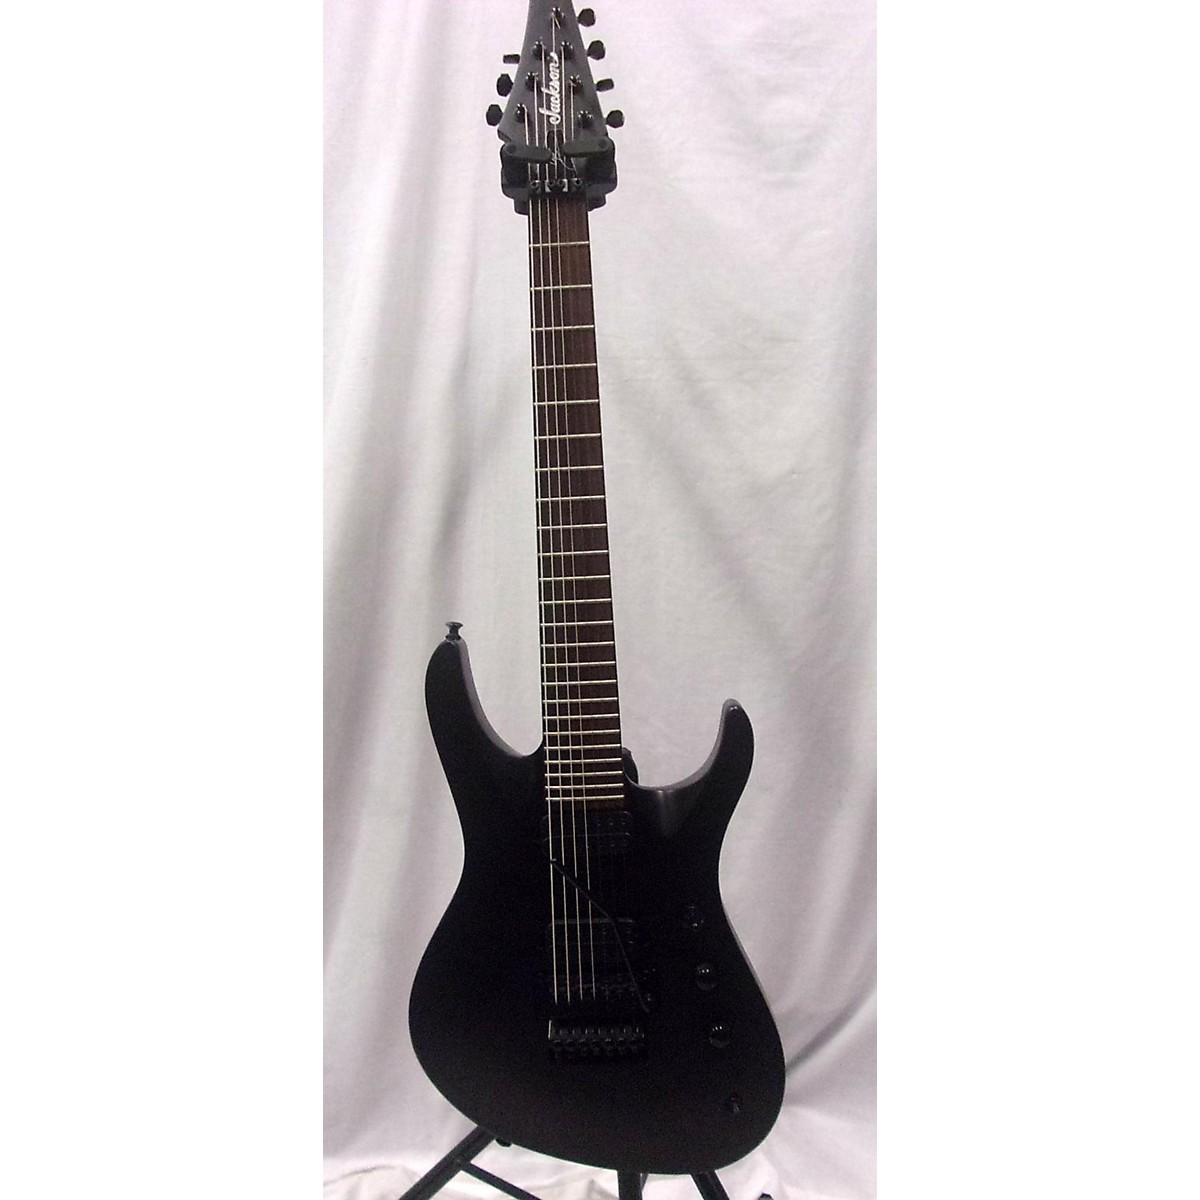 Jackson Chris Broderick Soloist 7 String Solid Body Electric Guitar